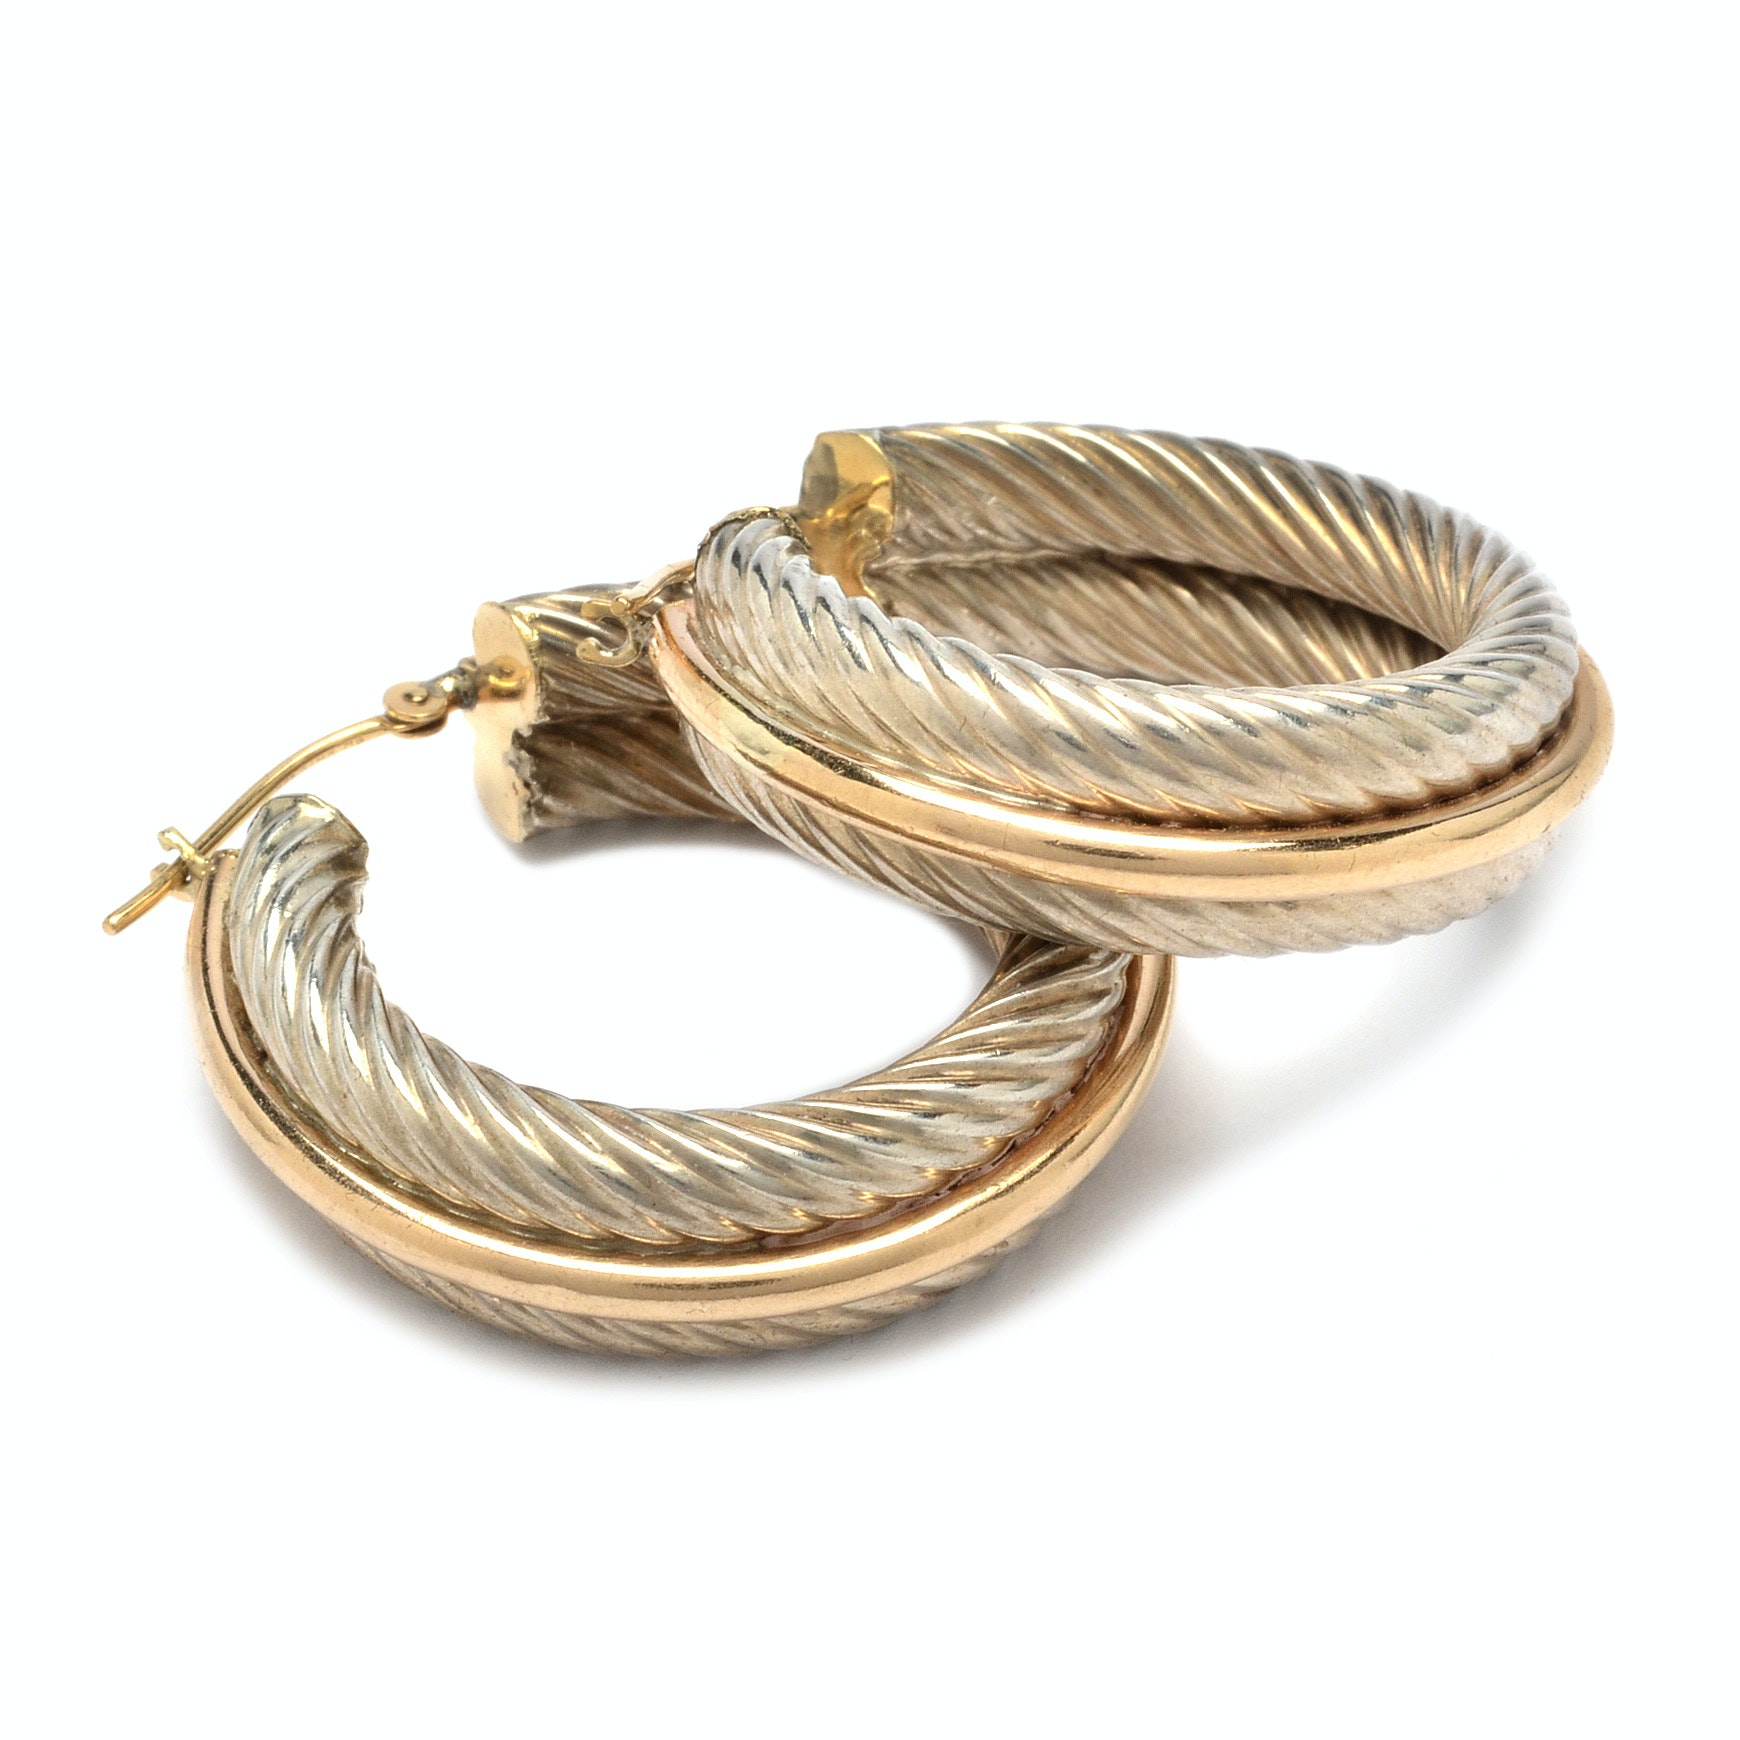 Marjorie Baer Sterling Silver and 14K Hoop Earrings